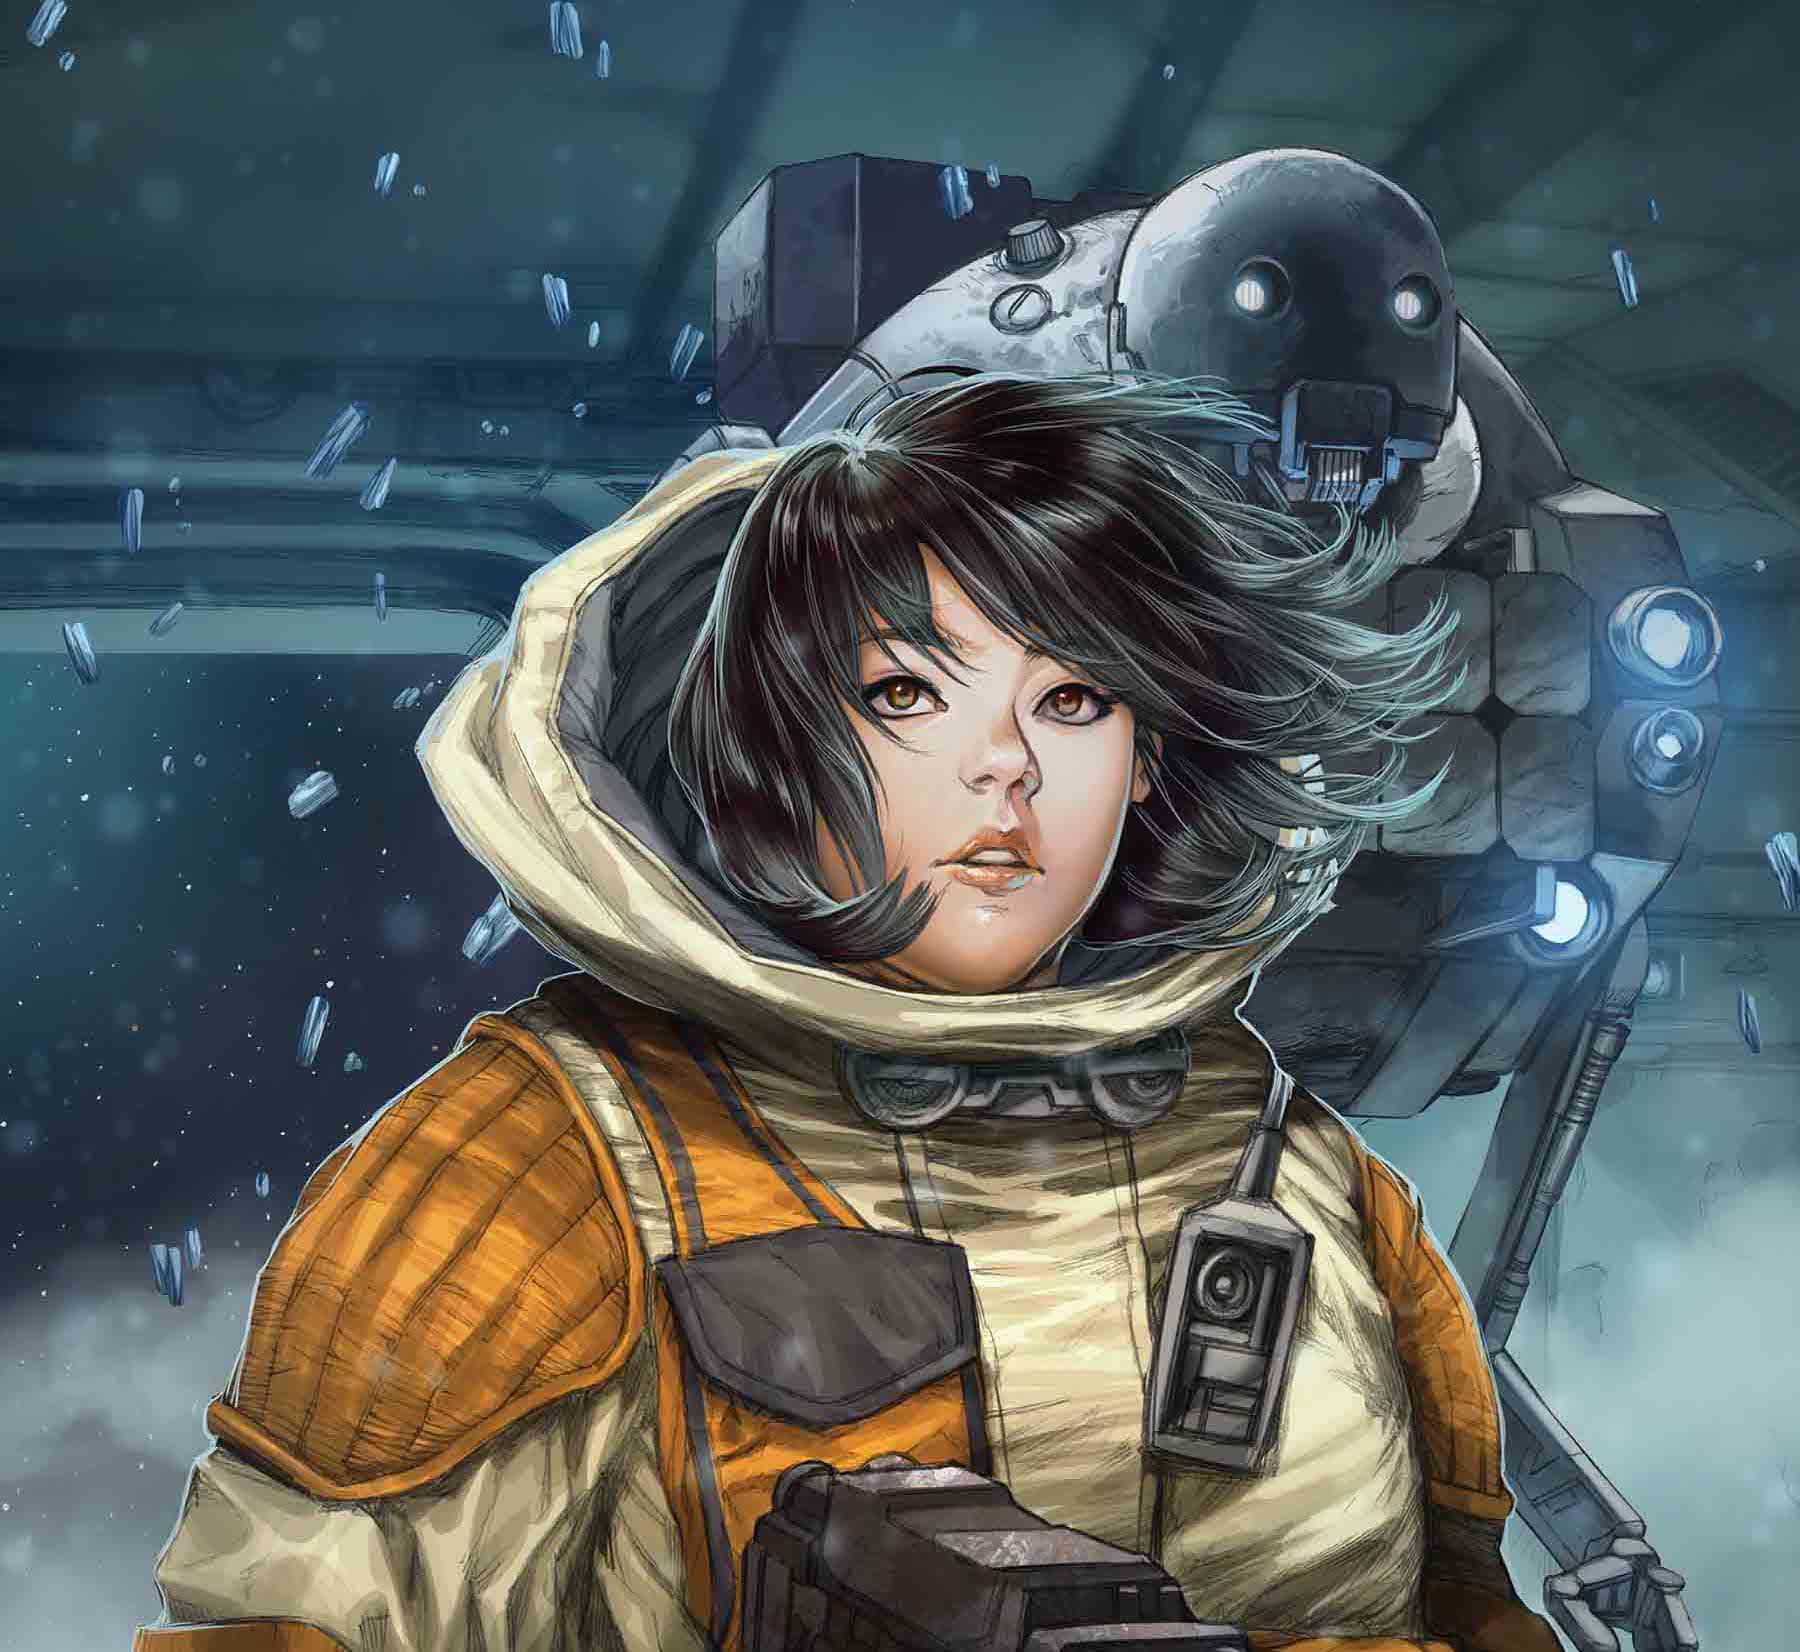 A must read for any Aphra fan.